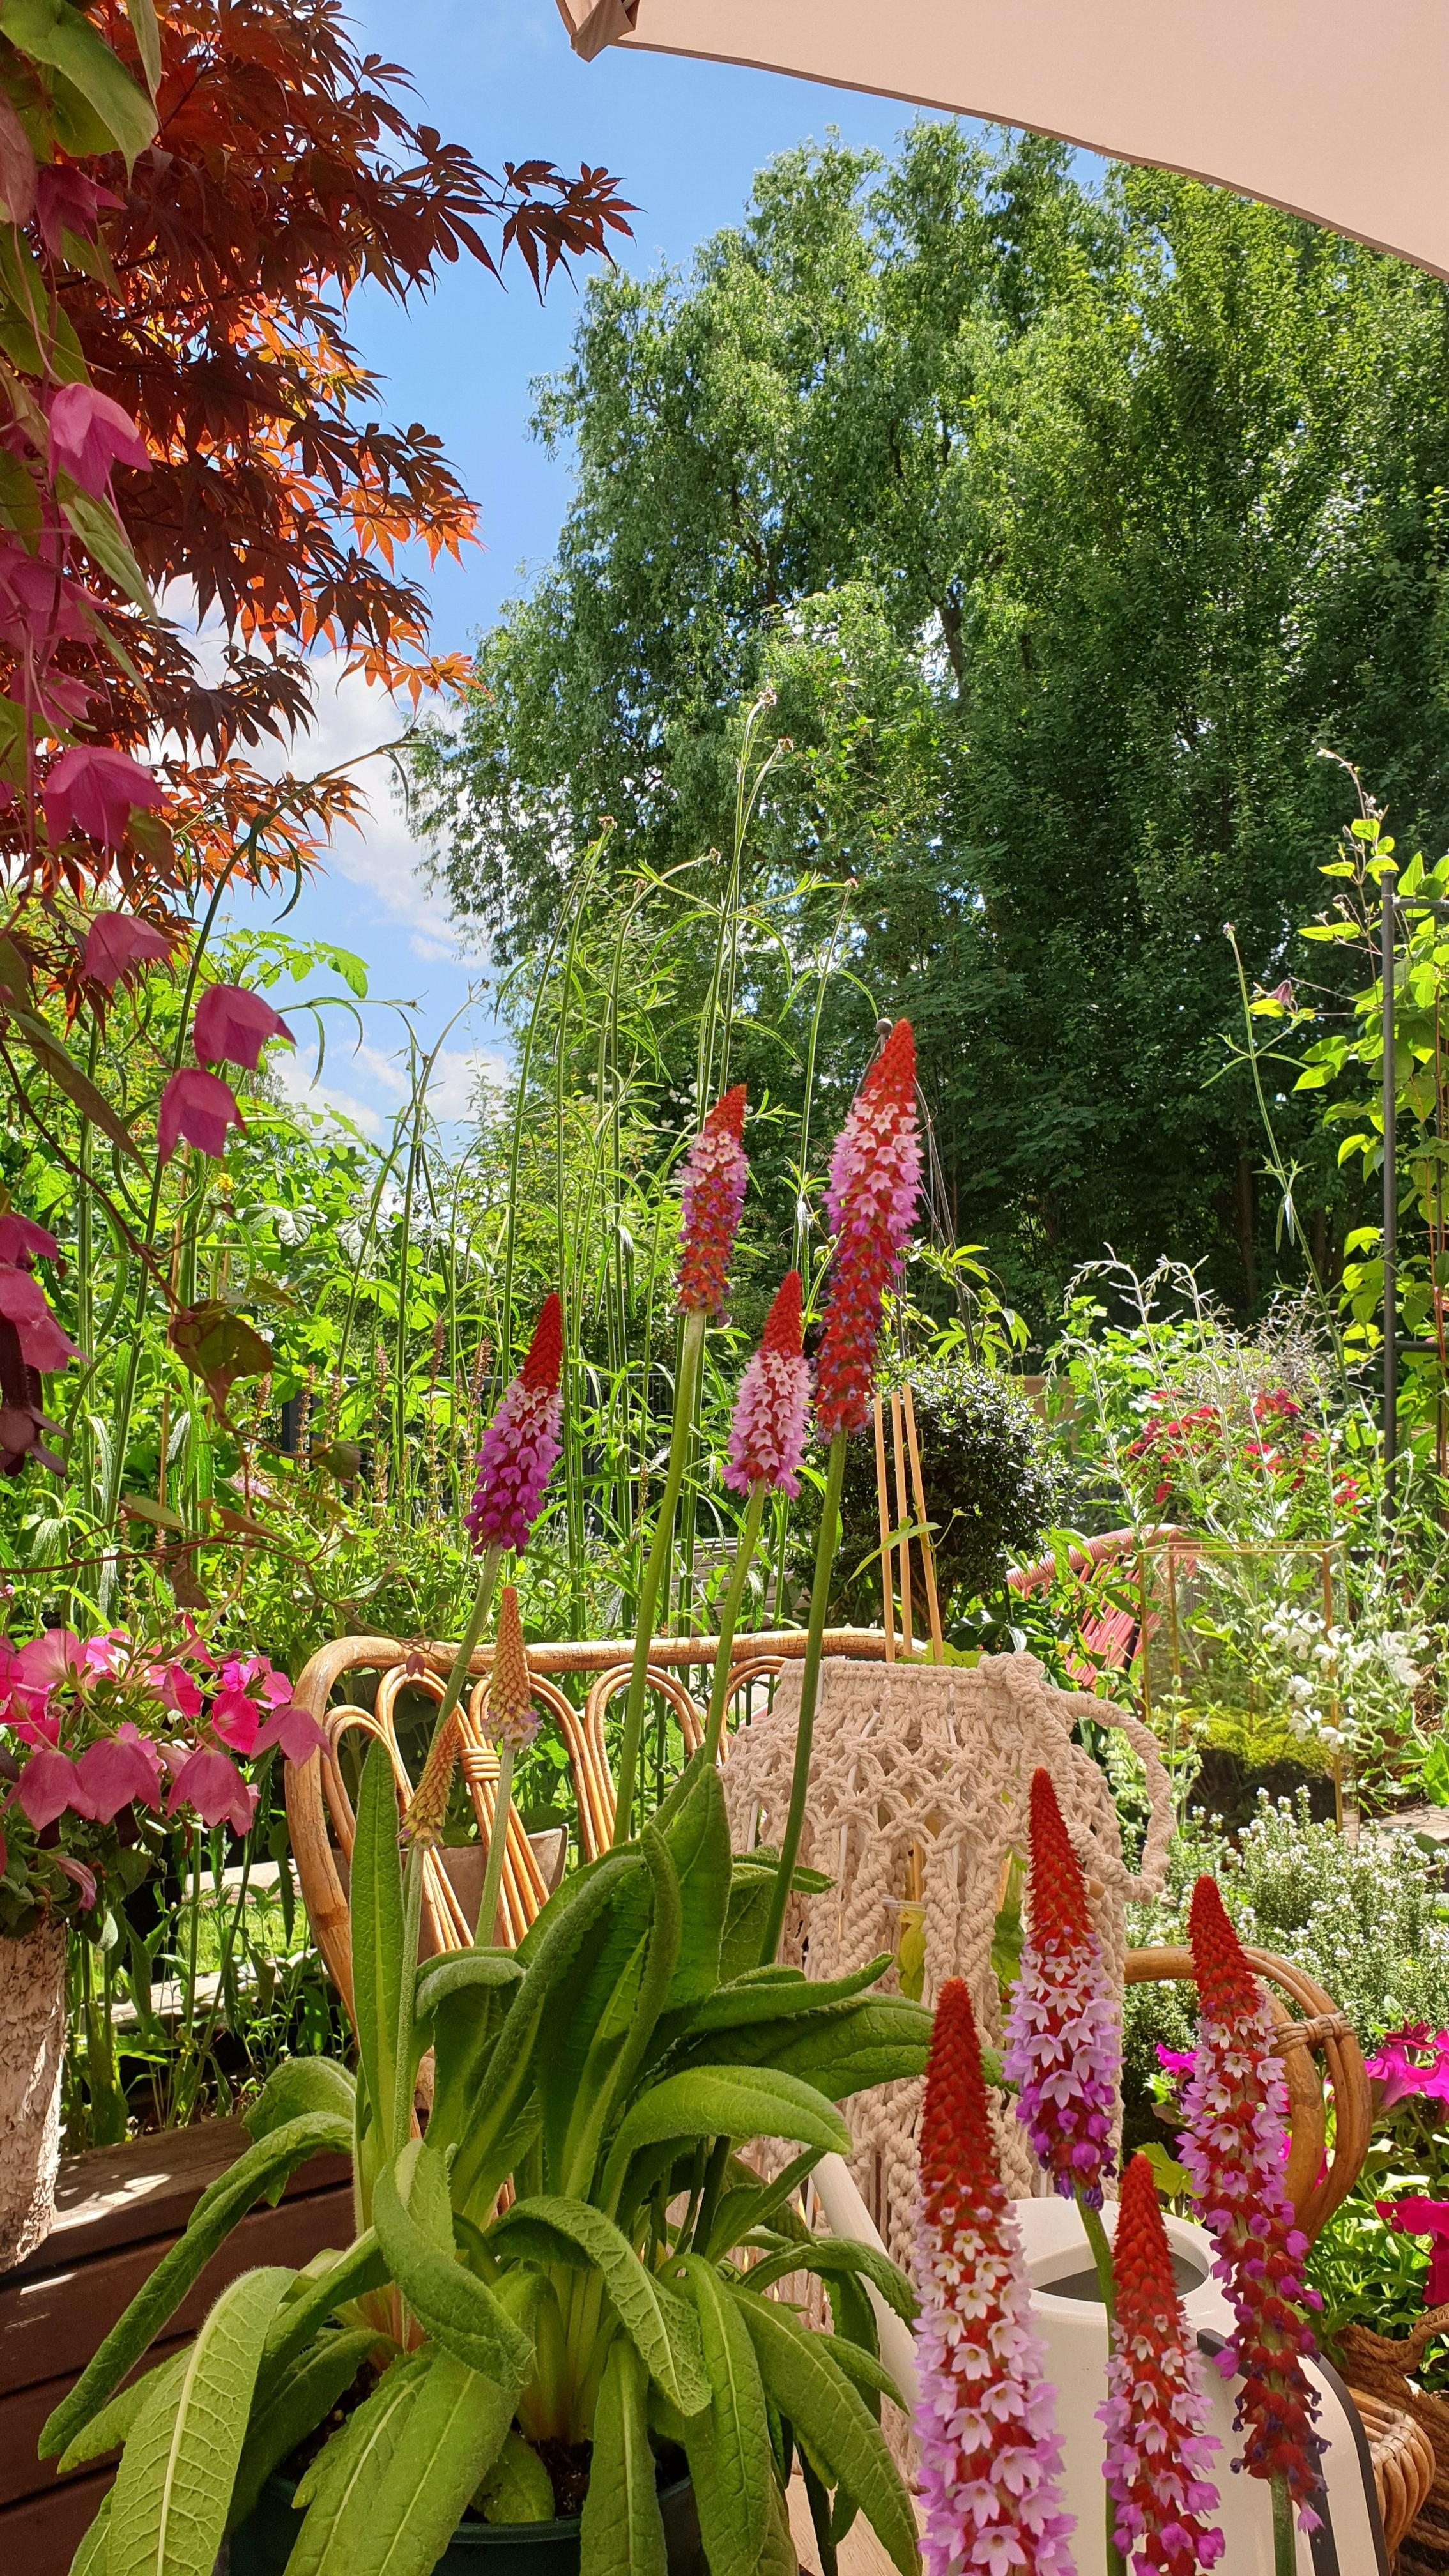 Outdoorweek sommerblumen orchideenprimel mylovelyterrace  42f1a877 1e13 42b9 be17 e56357032df2